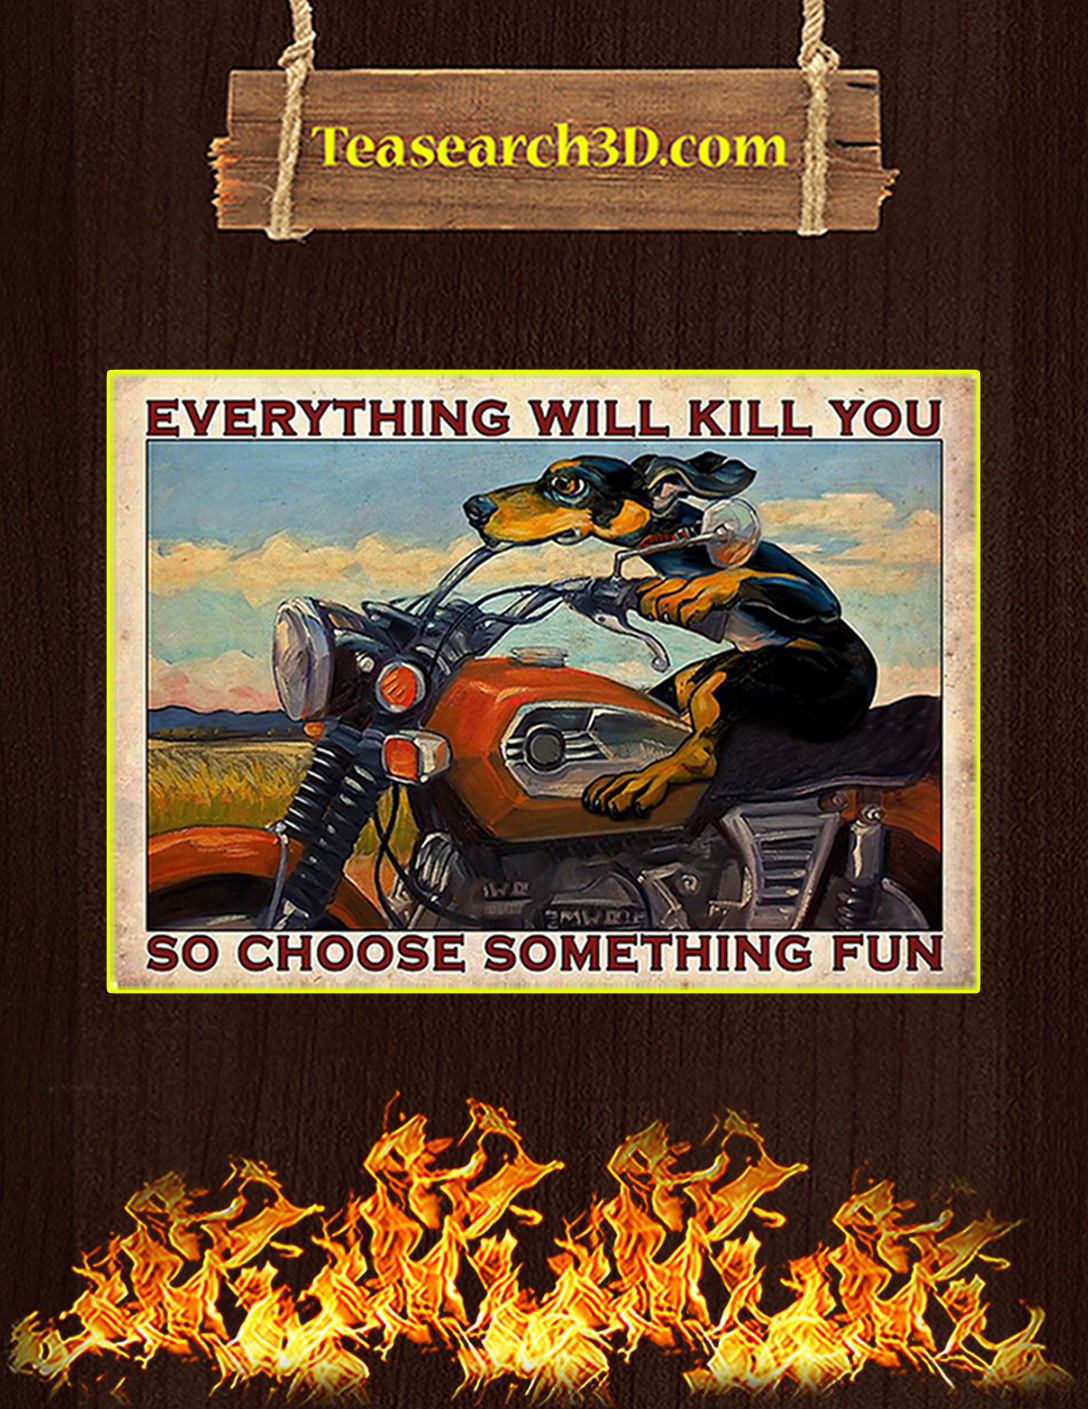 Dachshund motorcycle everything will kill you so choose something fun poster A2